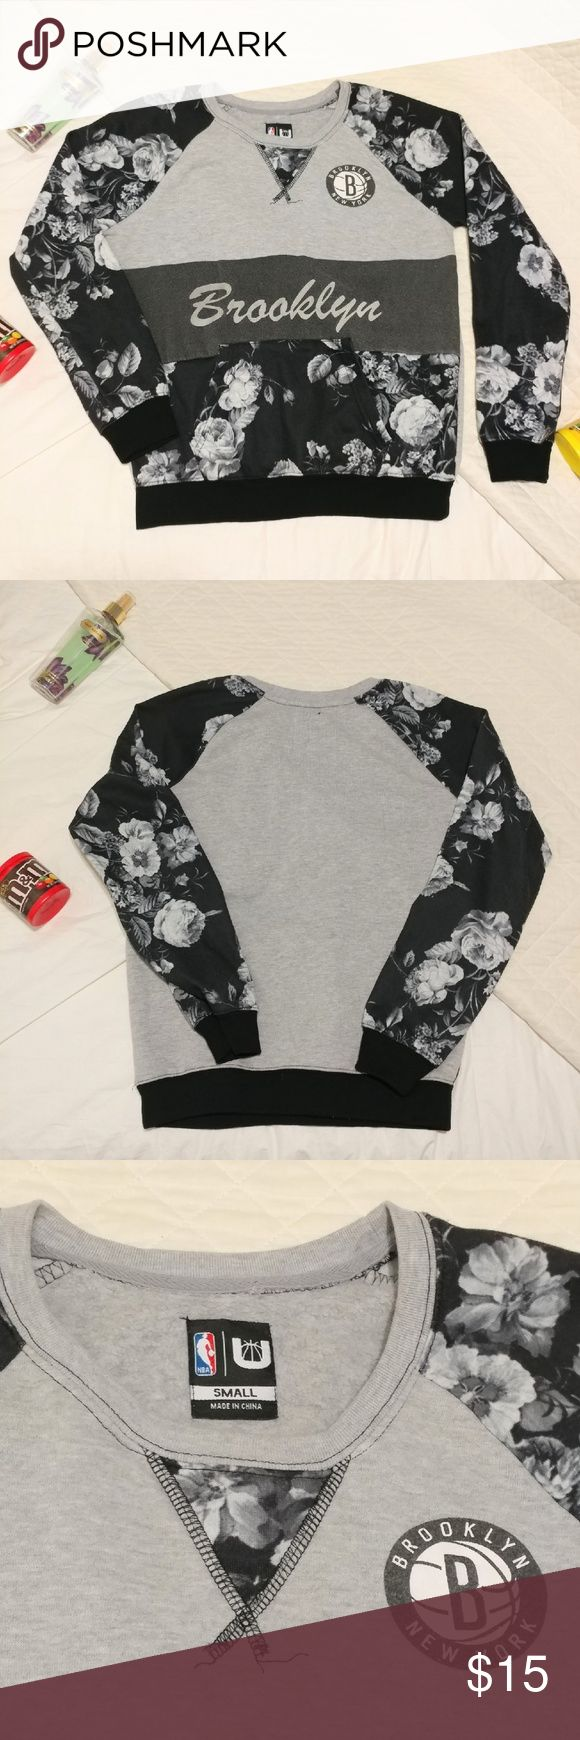 Brooklyn Nets Women's Floral Sweatshirt Used item. Adorable floral black and white sweatshirt. Size Small.  ??Reasonable offers are welcomed  ??No trades Tops Sweatshirts & Hoodies